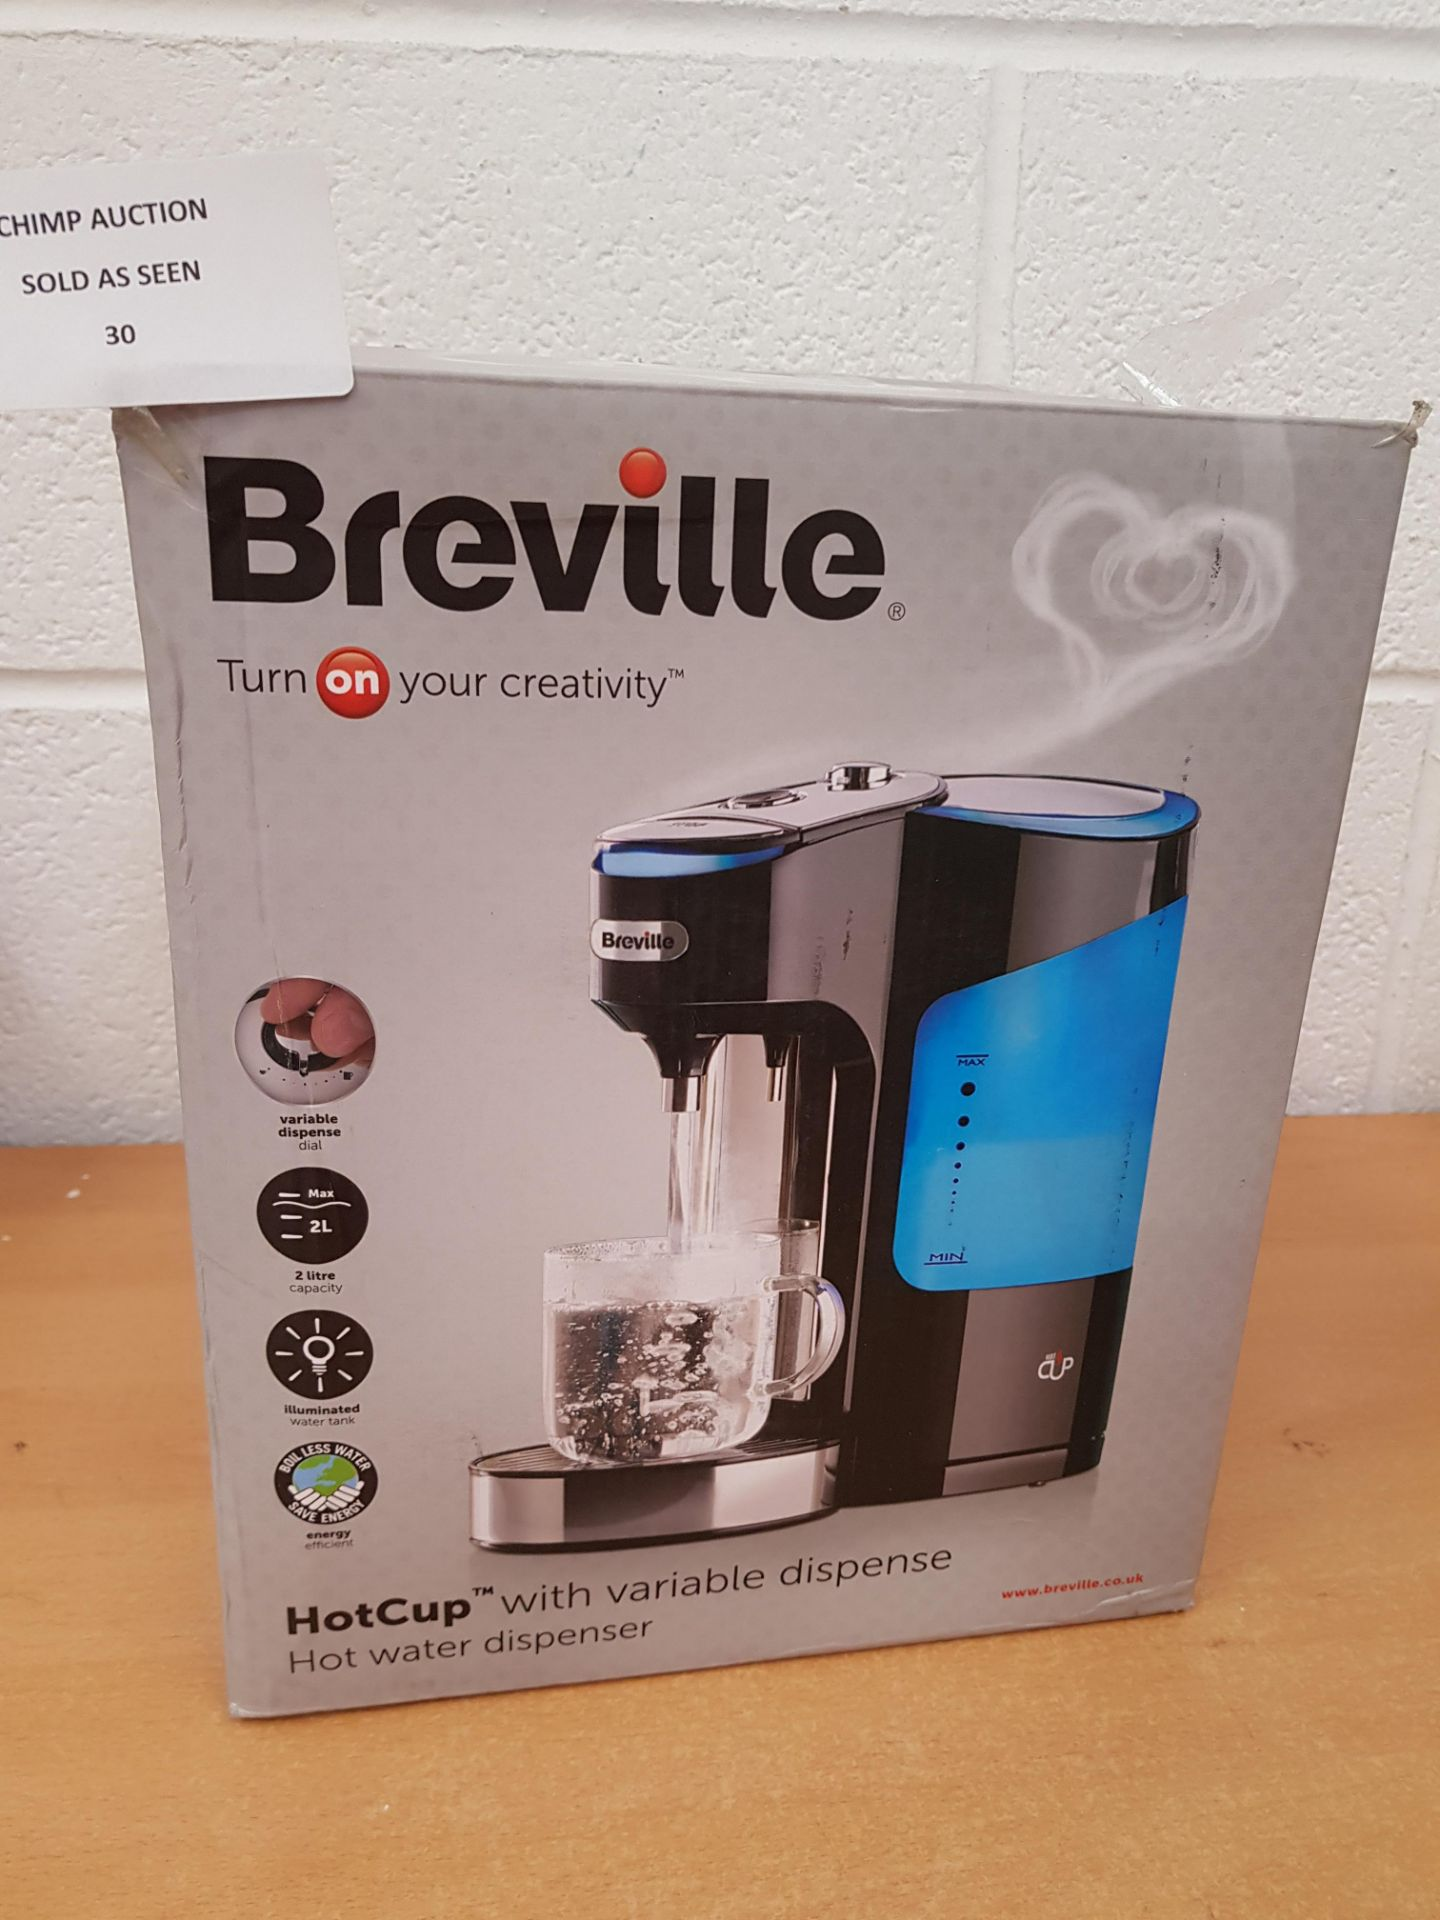 Lot 30 - Breville HotCup with Variable Dispense hot water Dispenser